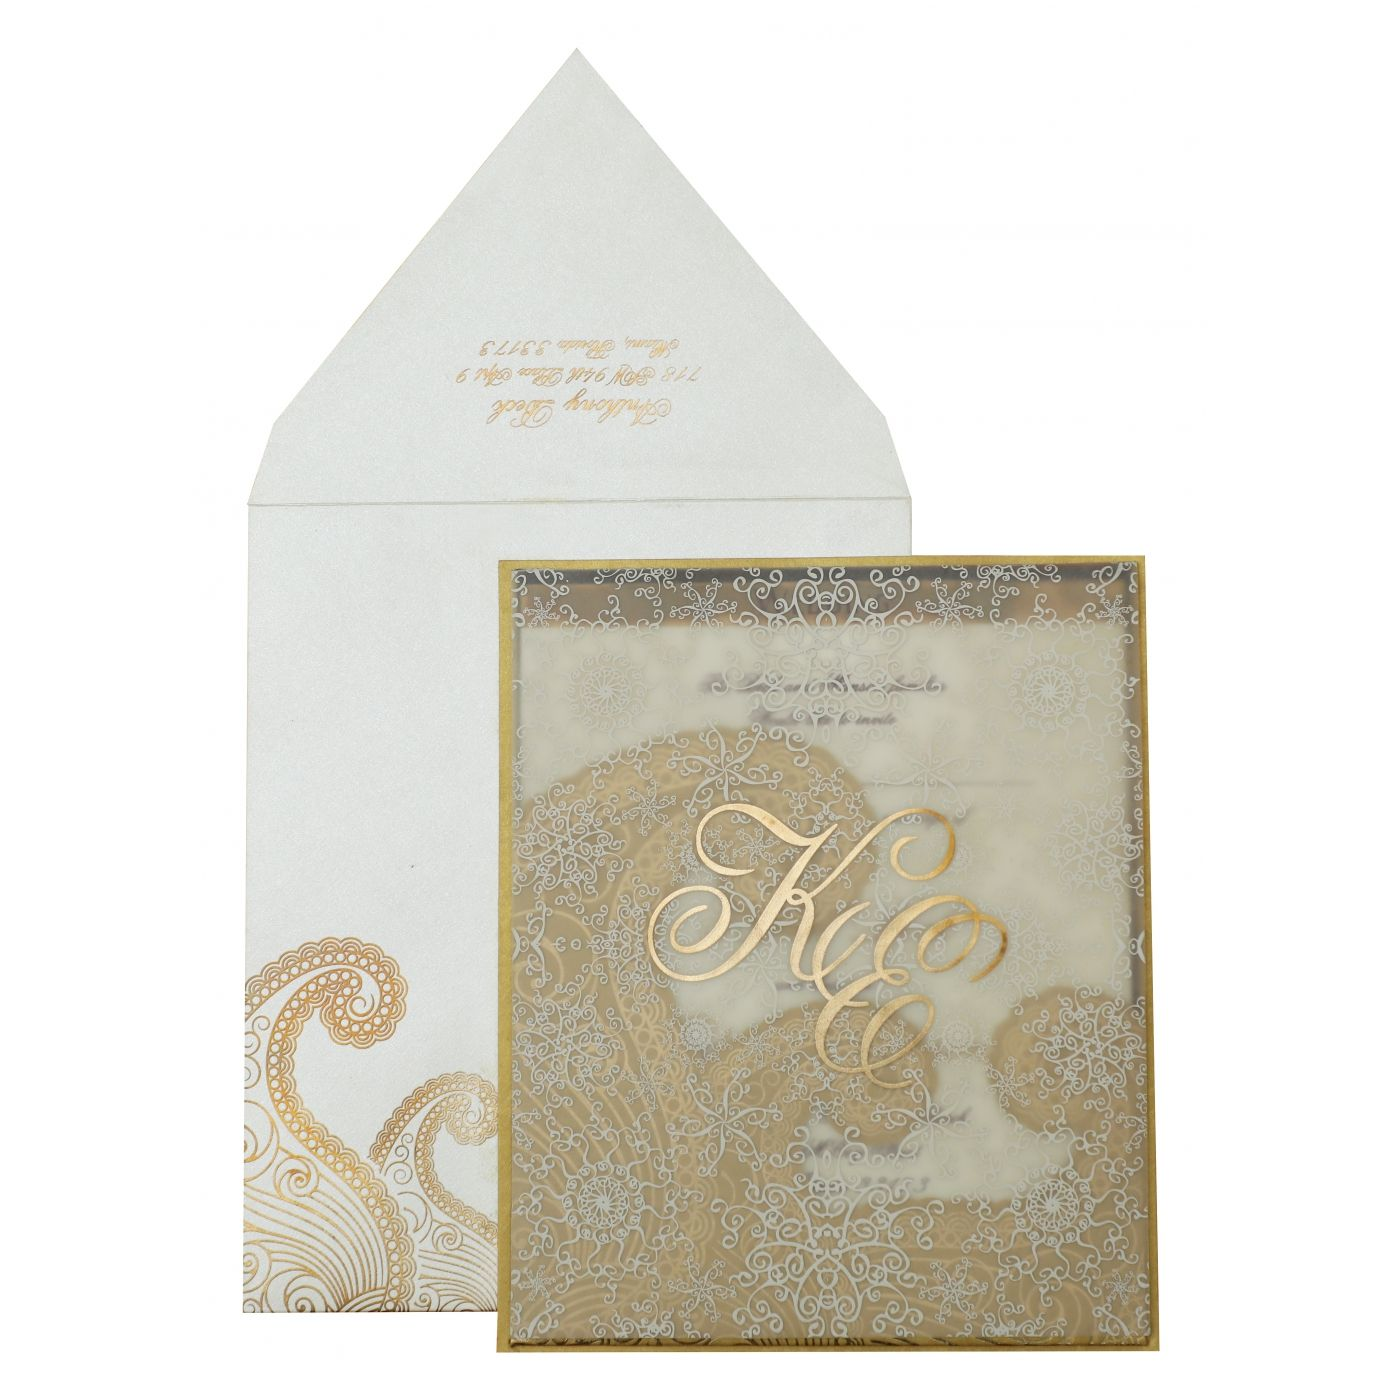 GOLD OFF-WHITE SHIMMERY PAISLEY THEMED - SCREEN PRINTED WEDDING INVITATION : CG-829 - IndianWeddingCards